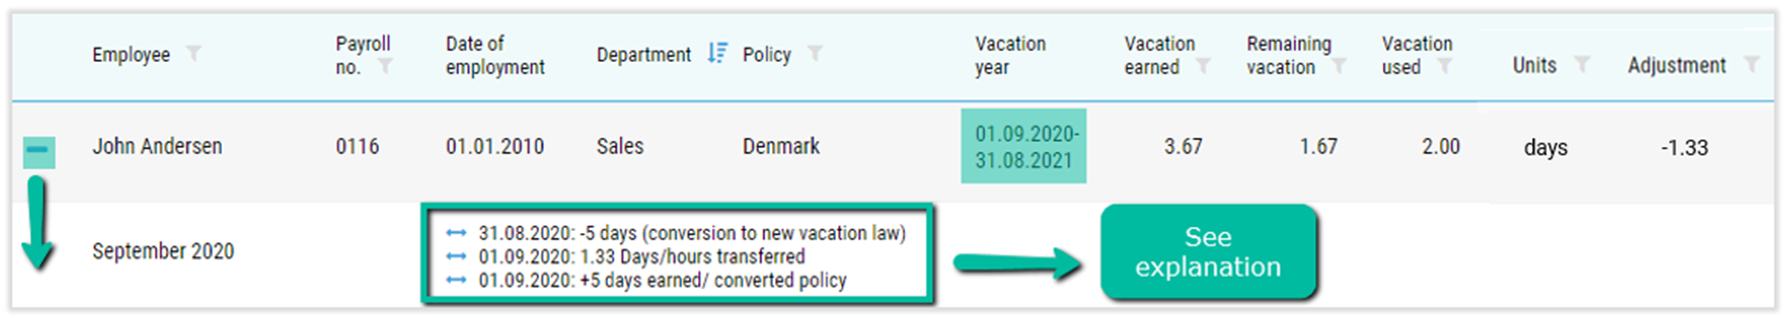 new vacation law